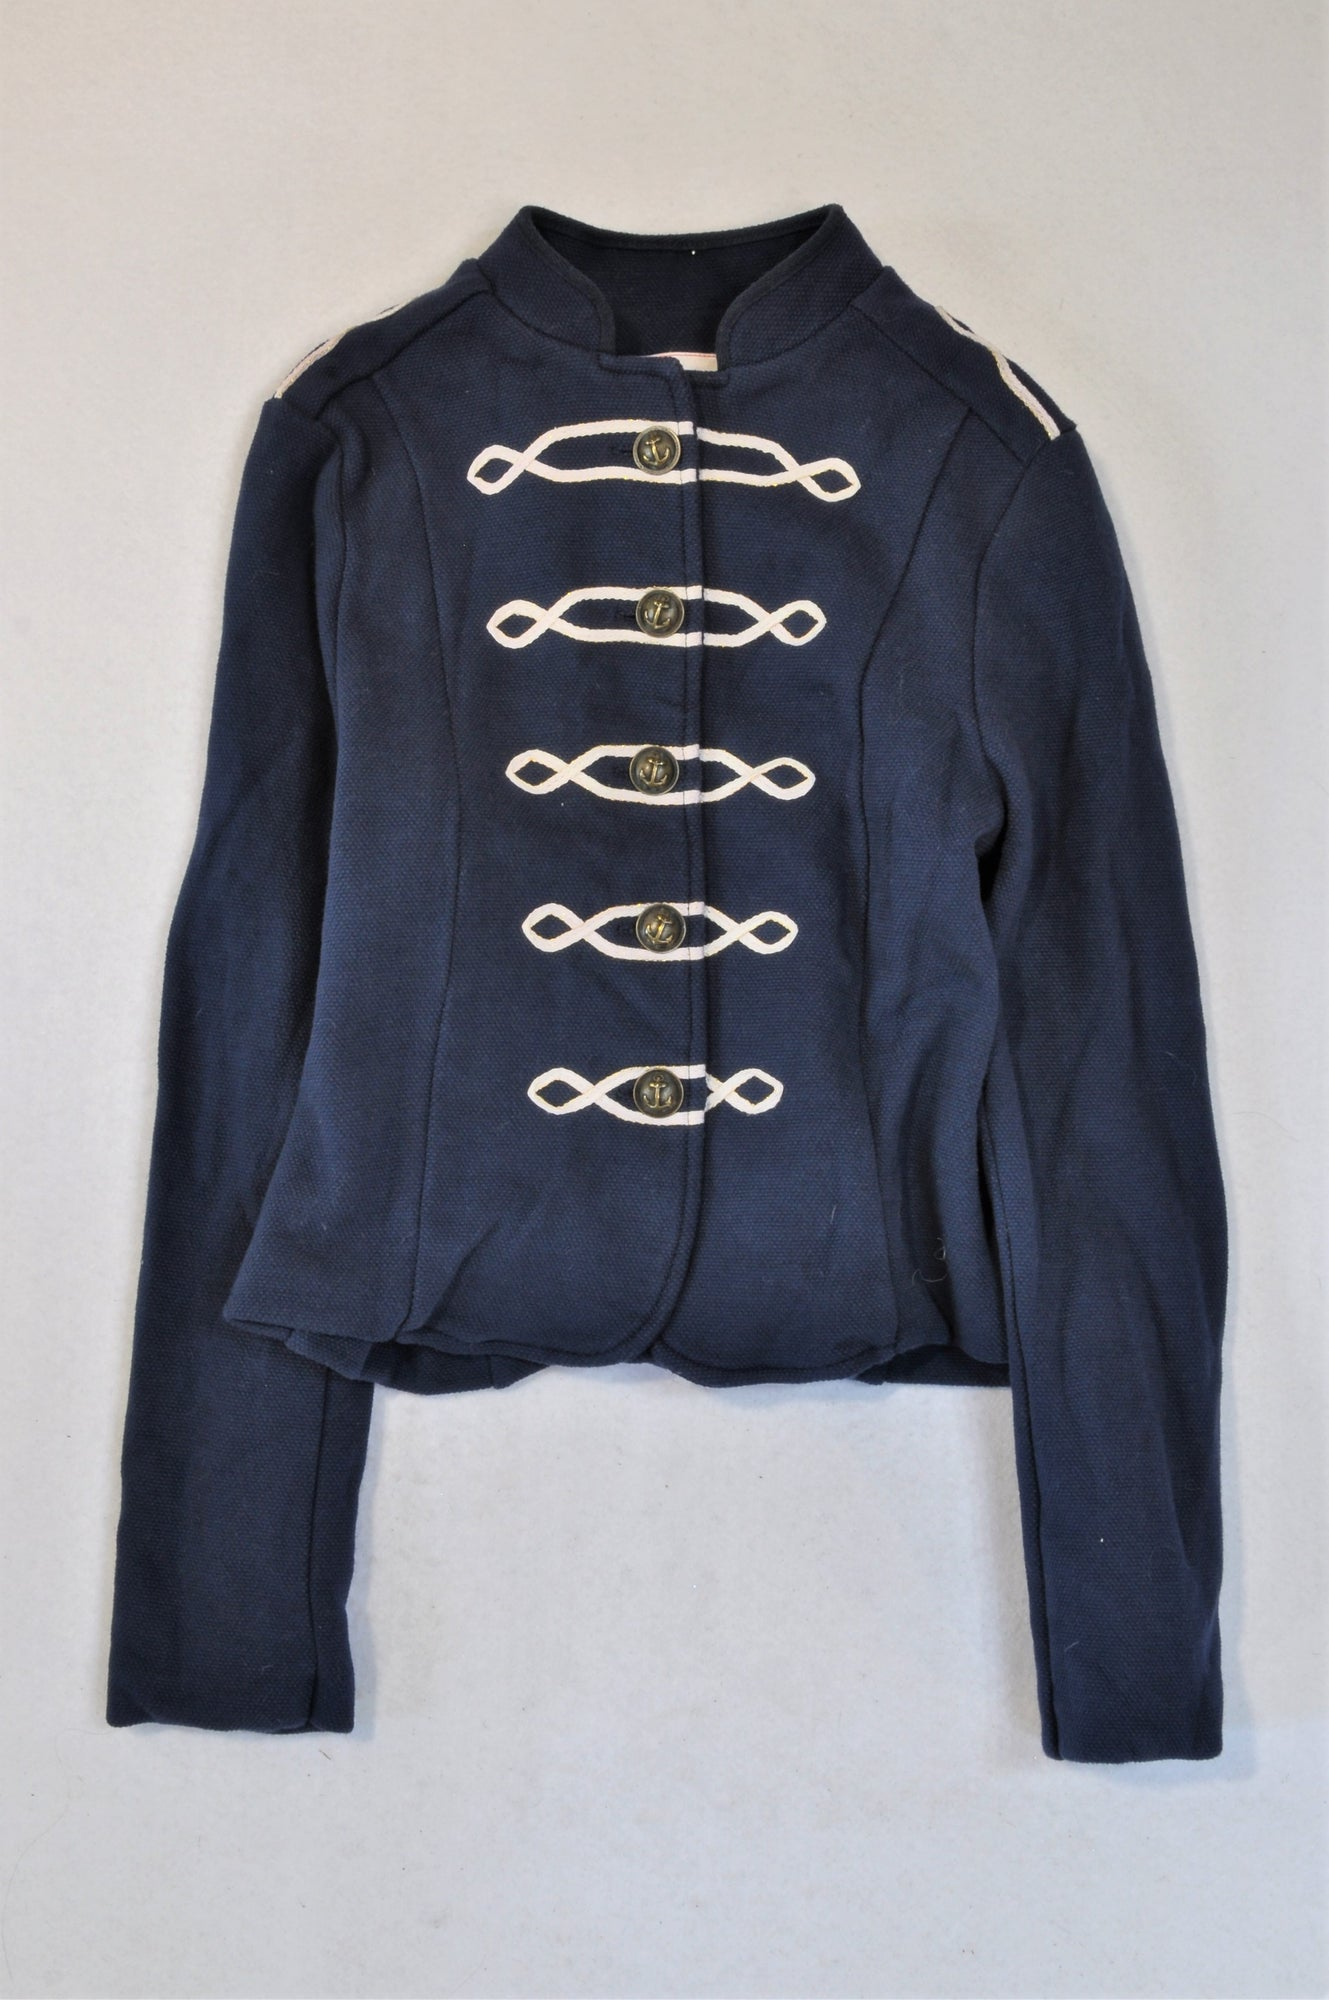 Johnnie B Navy & White Marching Band Anchor Button Detail Jacket Girls 11-12 years